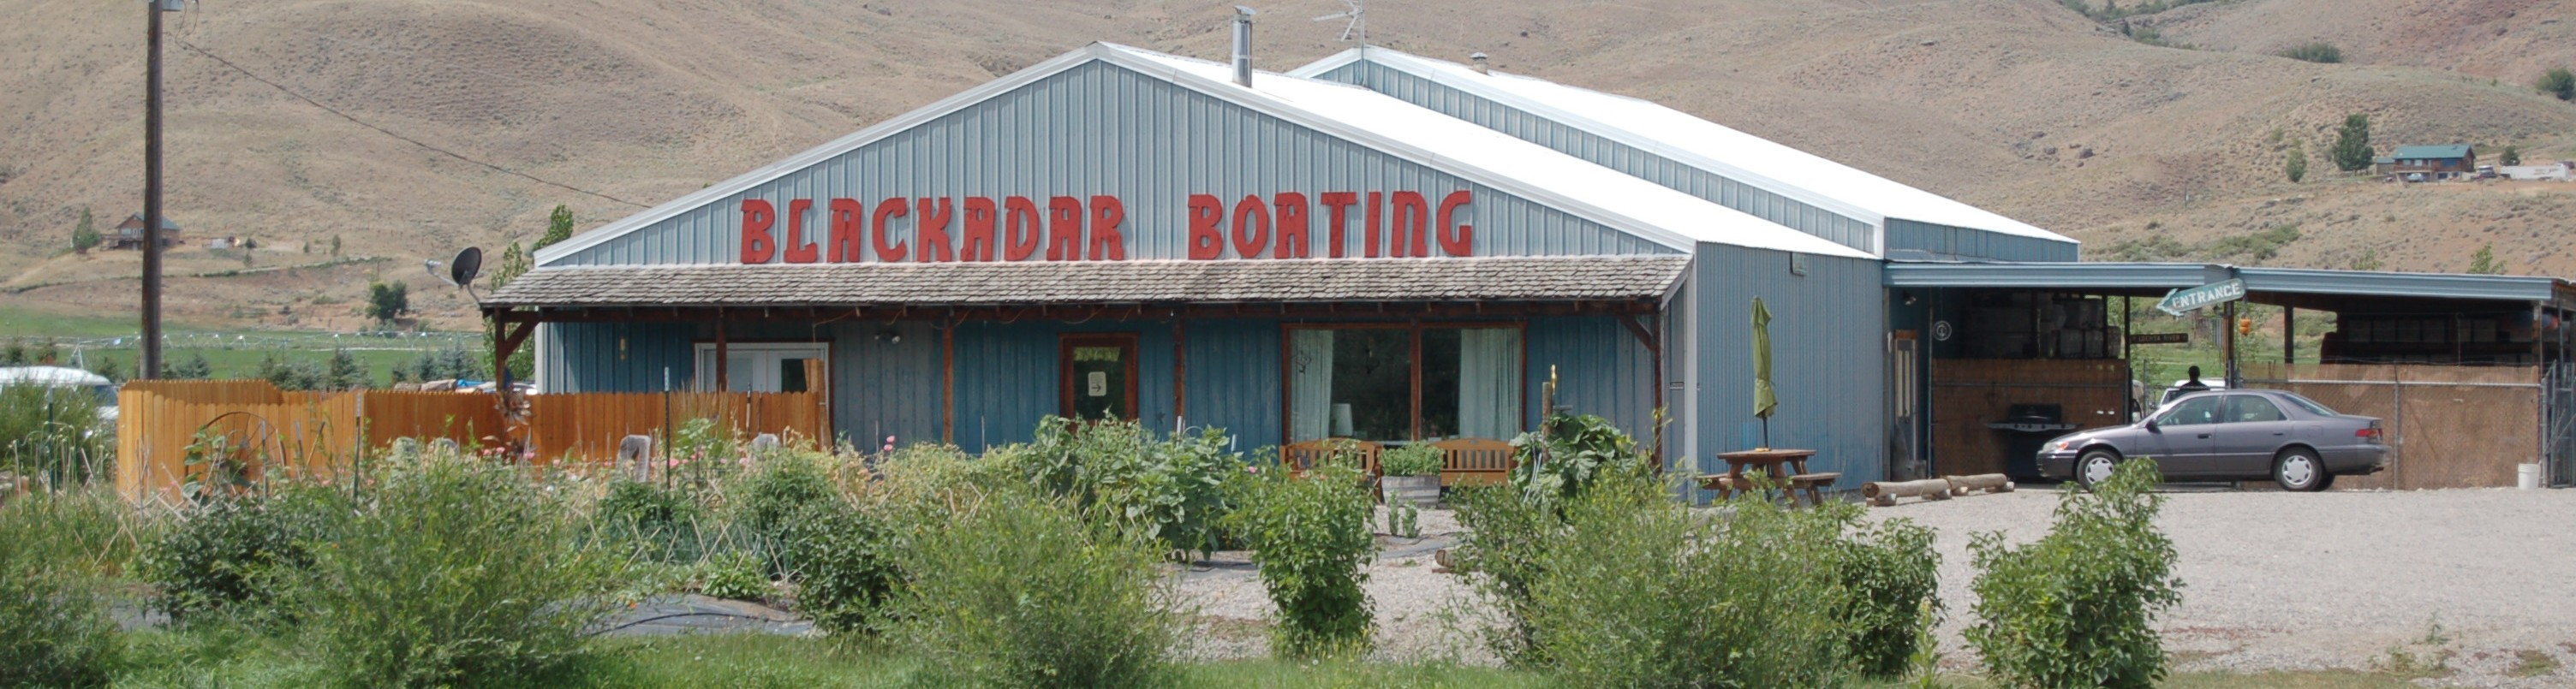 Blackadar Boating Shop on Highway 93 North